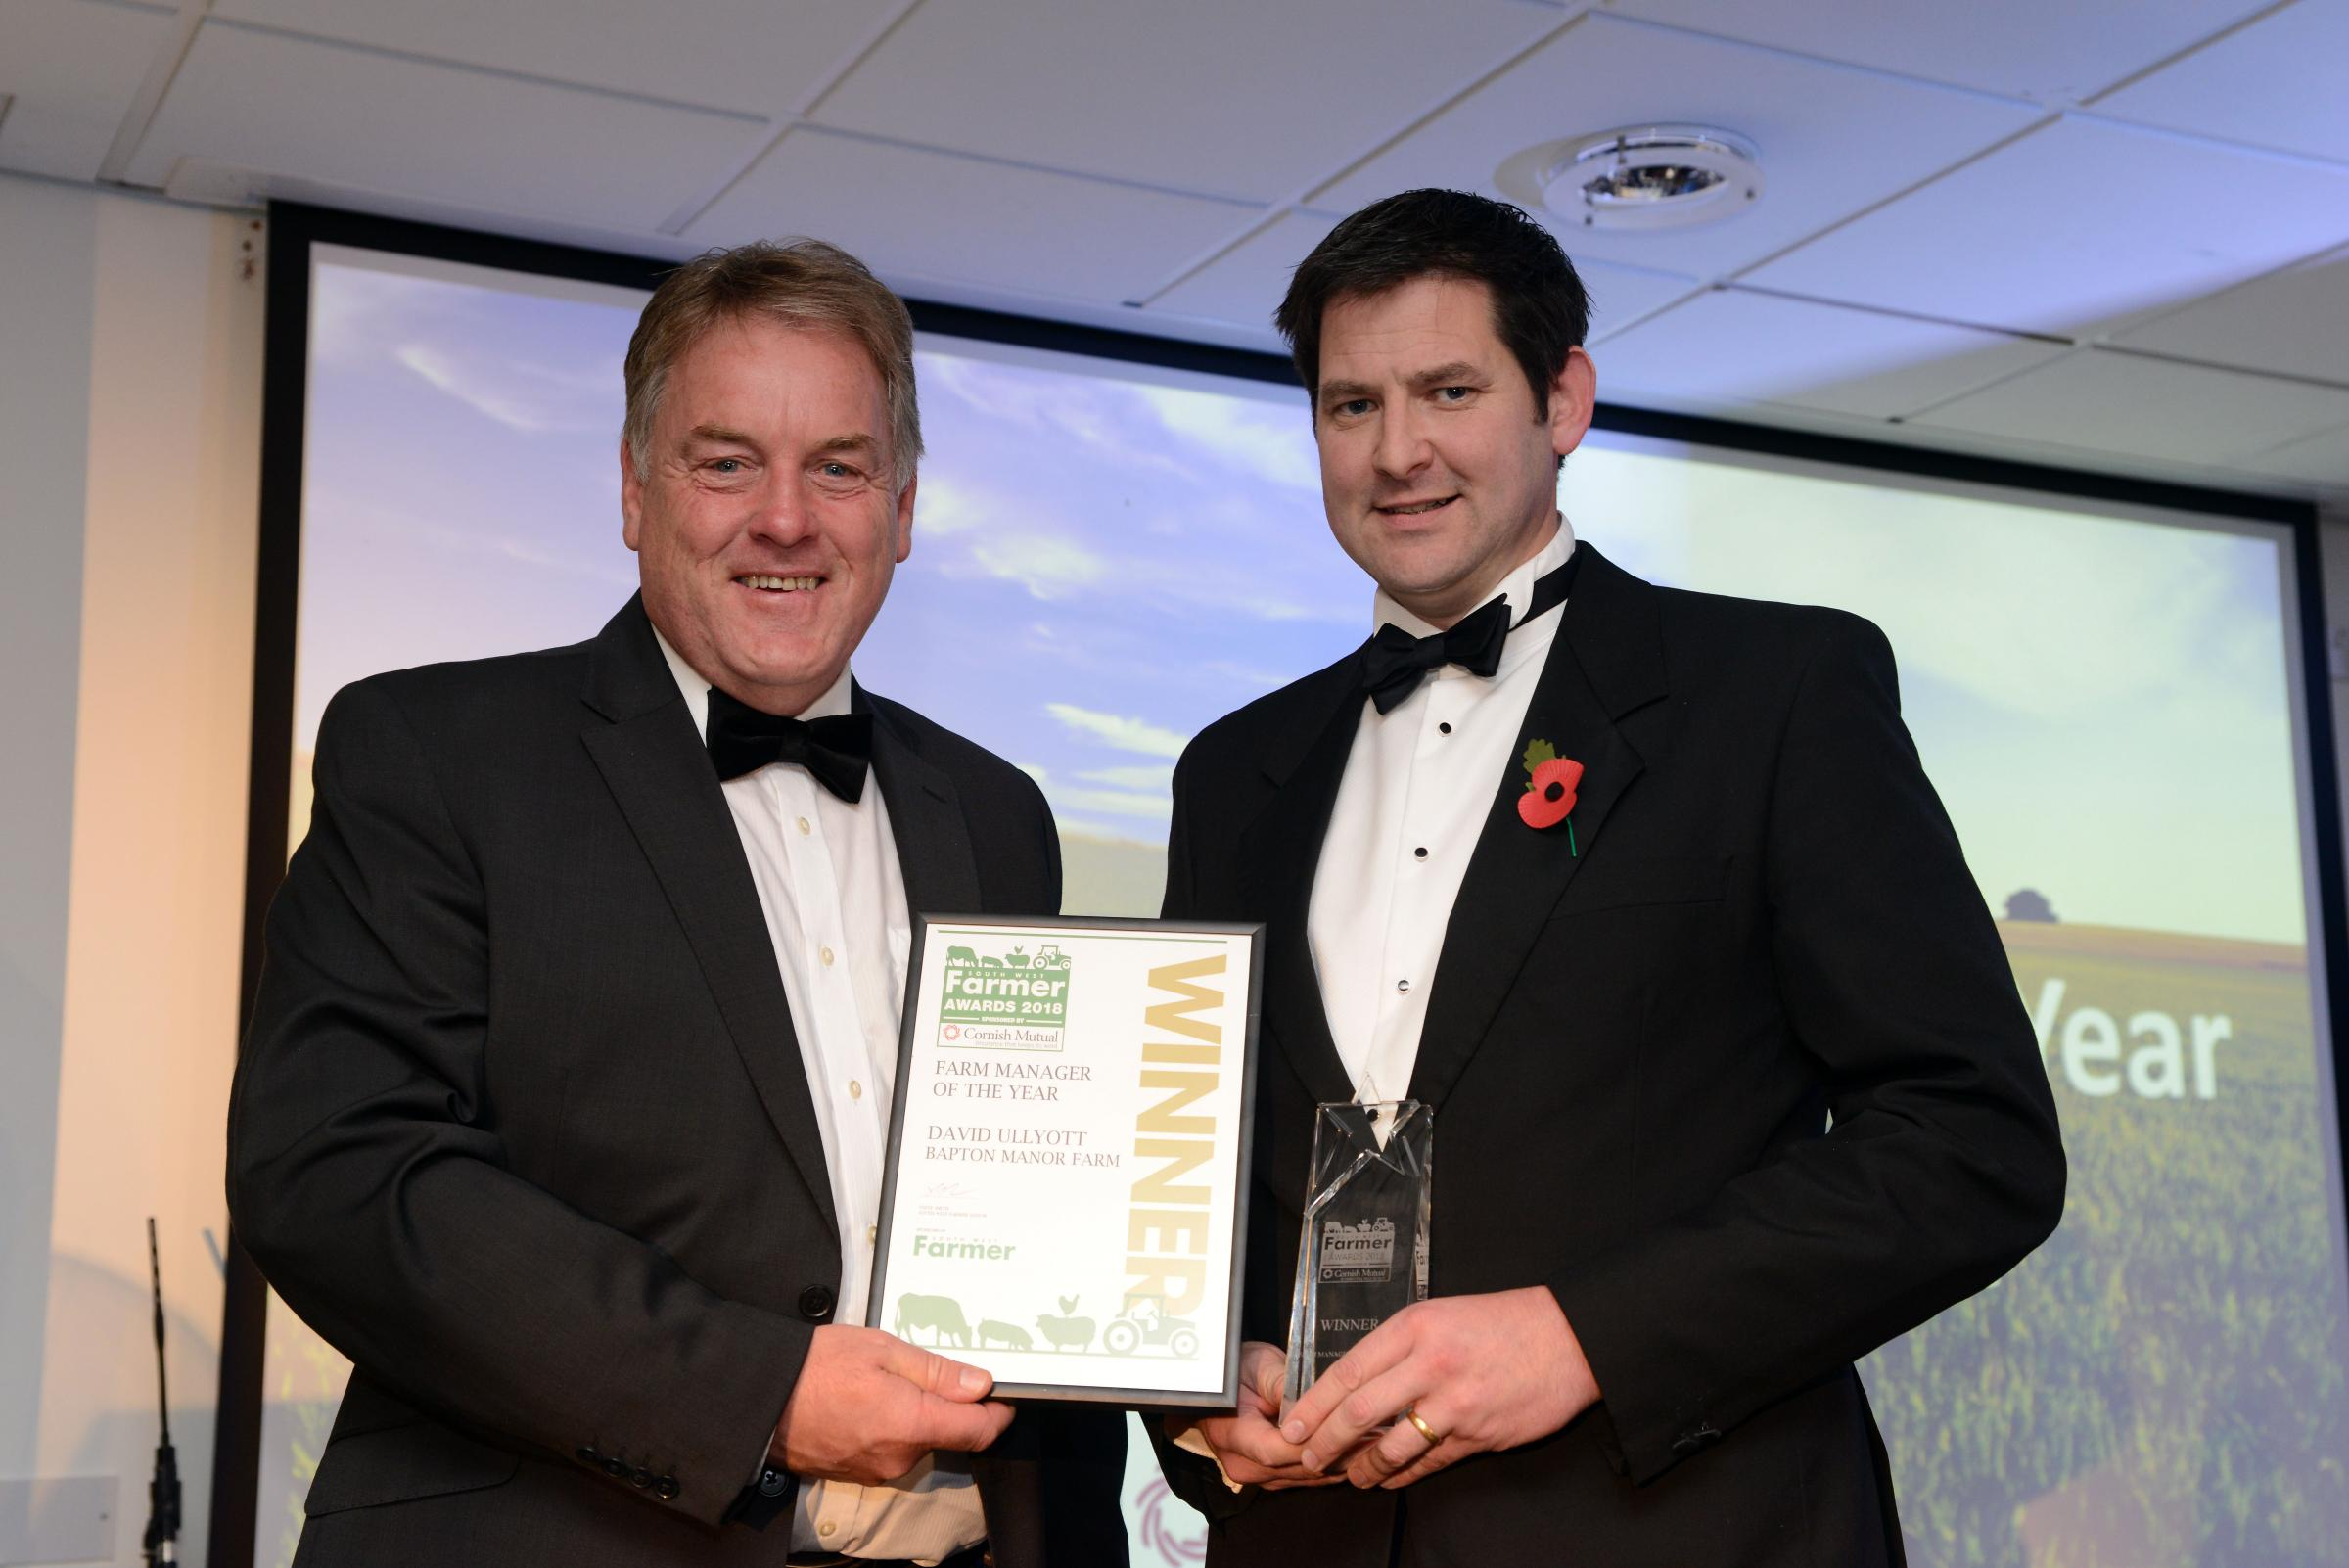 The South West Farmer Awards 2018. Pictured Stephen Dennis of the Farming Community Network with winner of the Farm Manager award David Ullyott from Bapton Manor Farm.